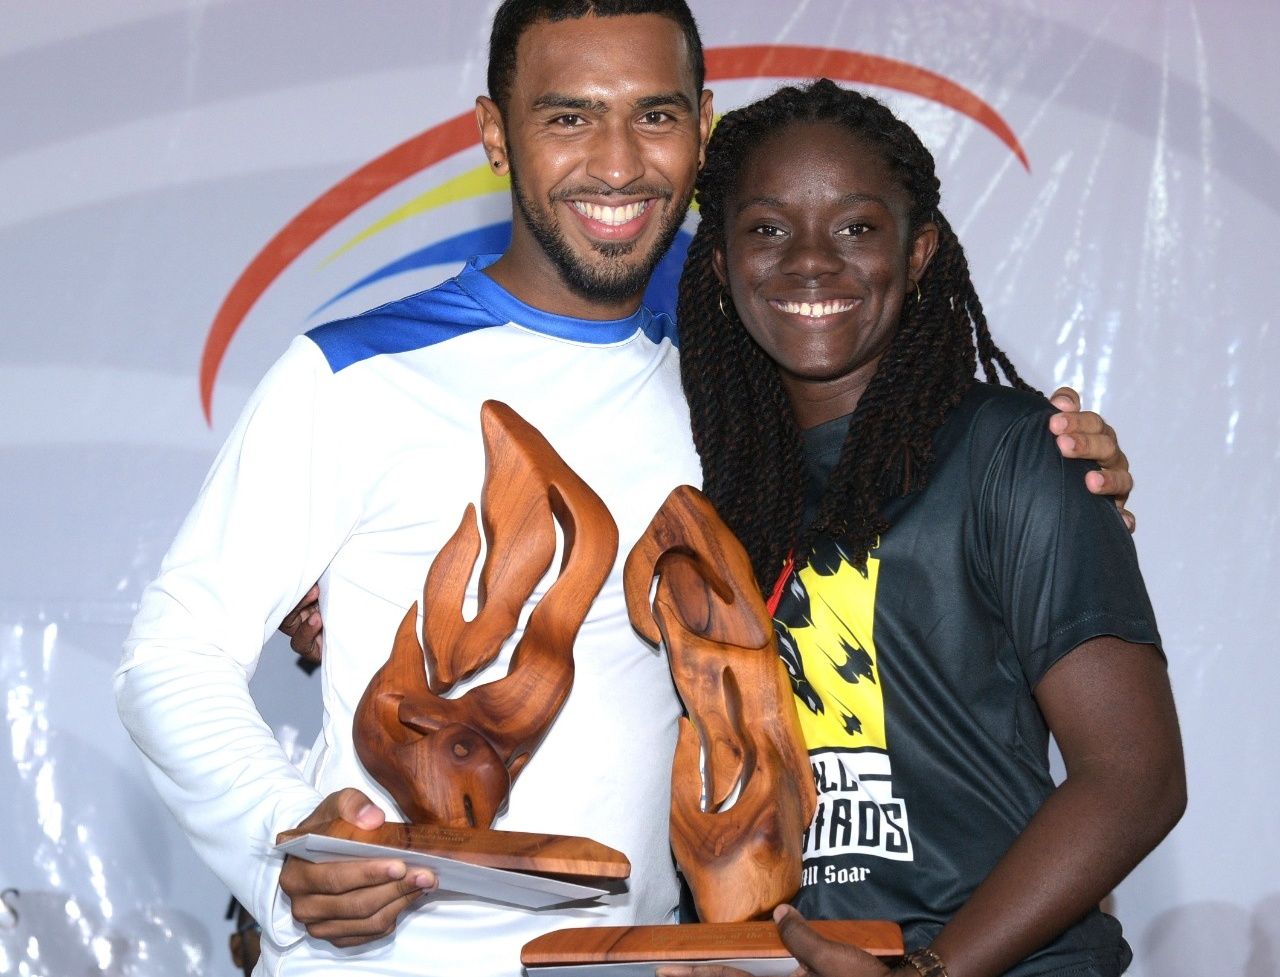 2019 UWI Vice-Chancellor's Sportswoman and Sportsman of the Year, Vanessa Bobb and Jordan Reynos